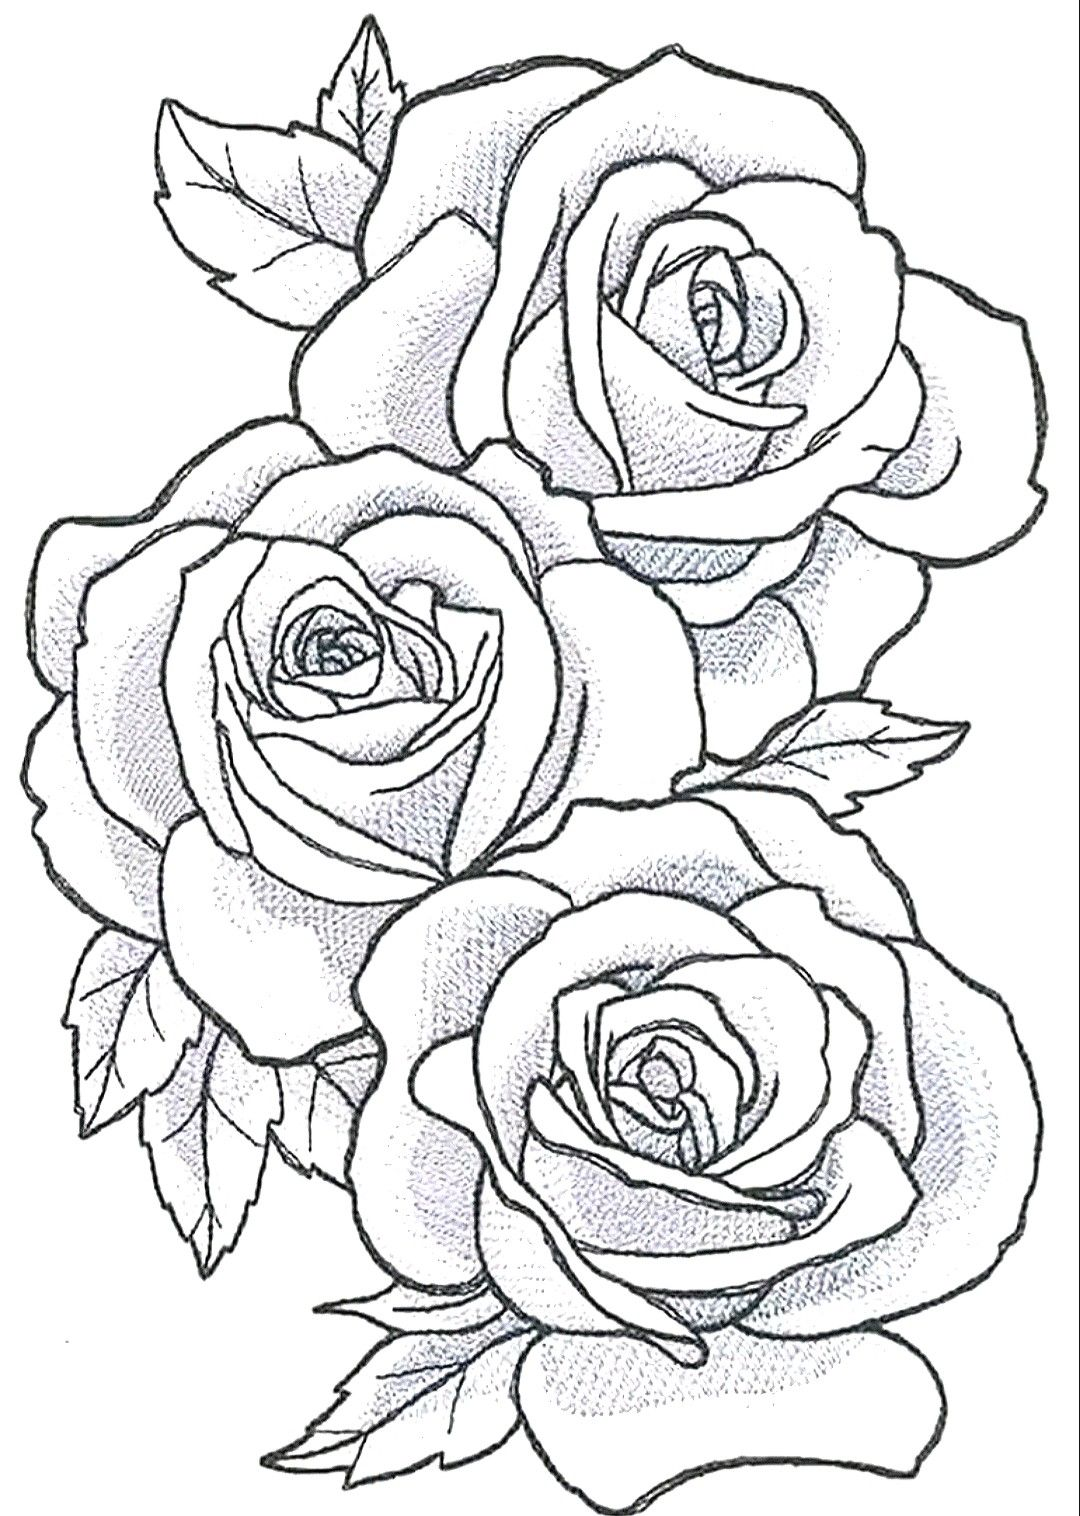 Pin By Jk On Drawings In 2020 Rose Outline Tattoo Rose Tattoo Stencil Flower Outline Tattoo